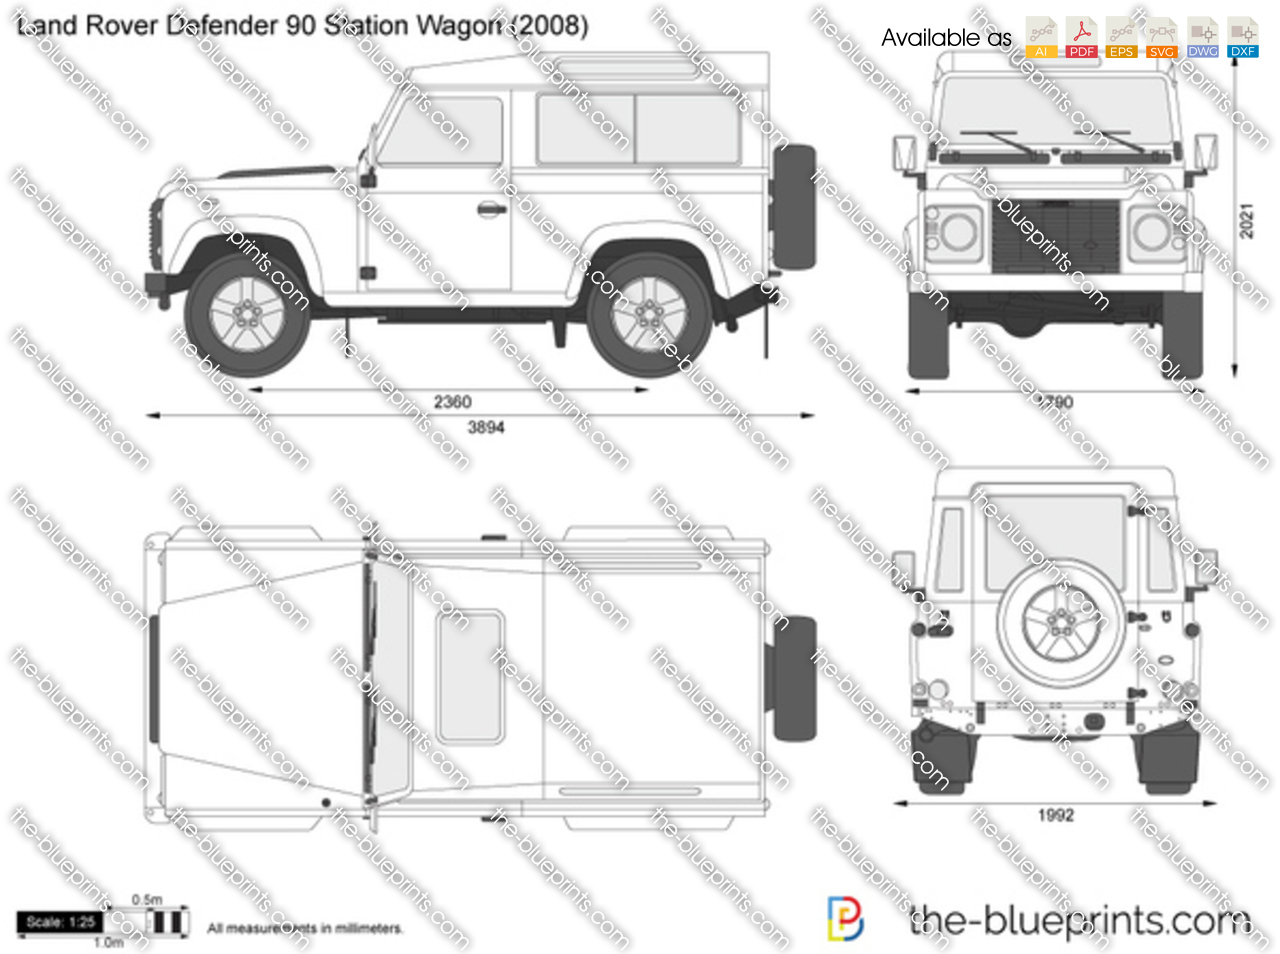 Land Rover Defender 90 Station Wagon 1991